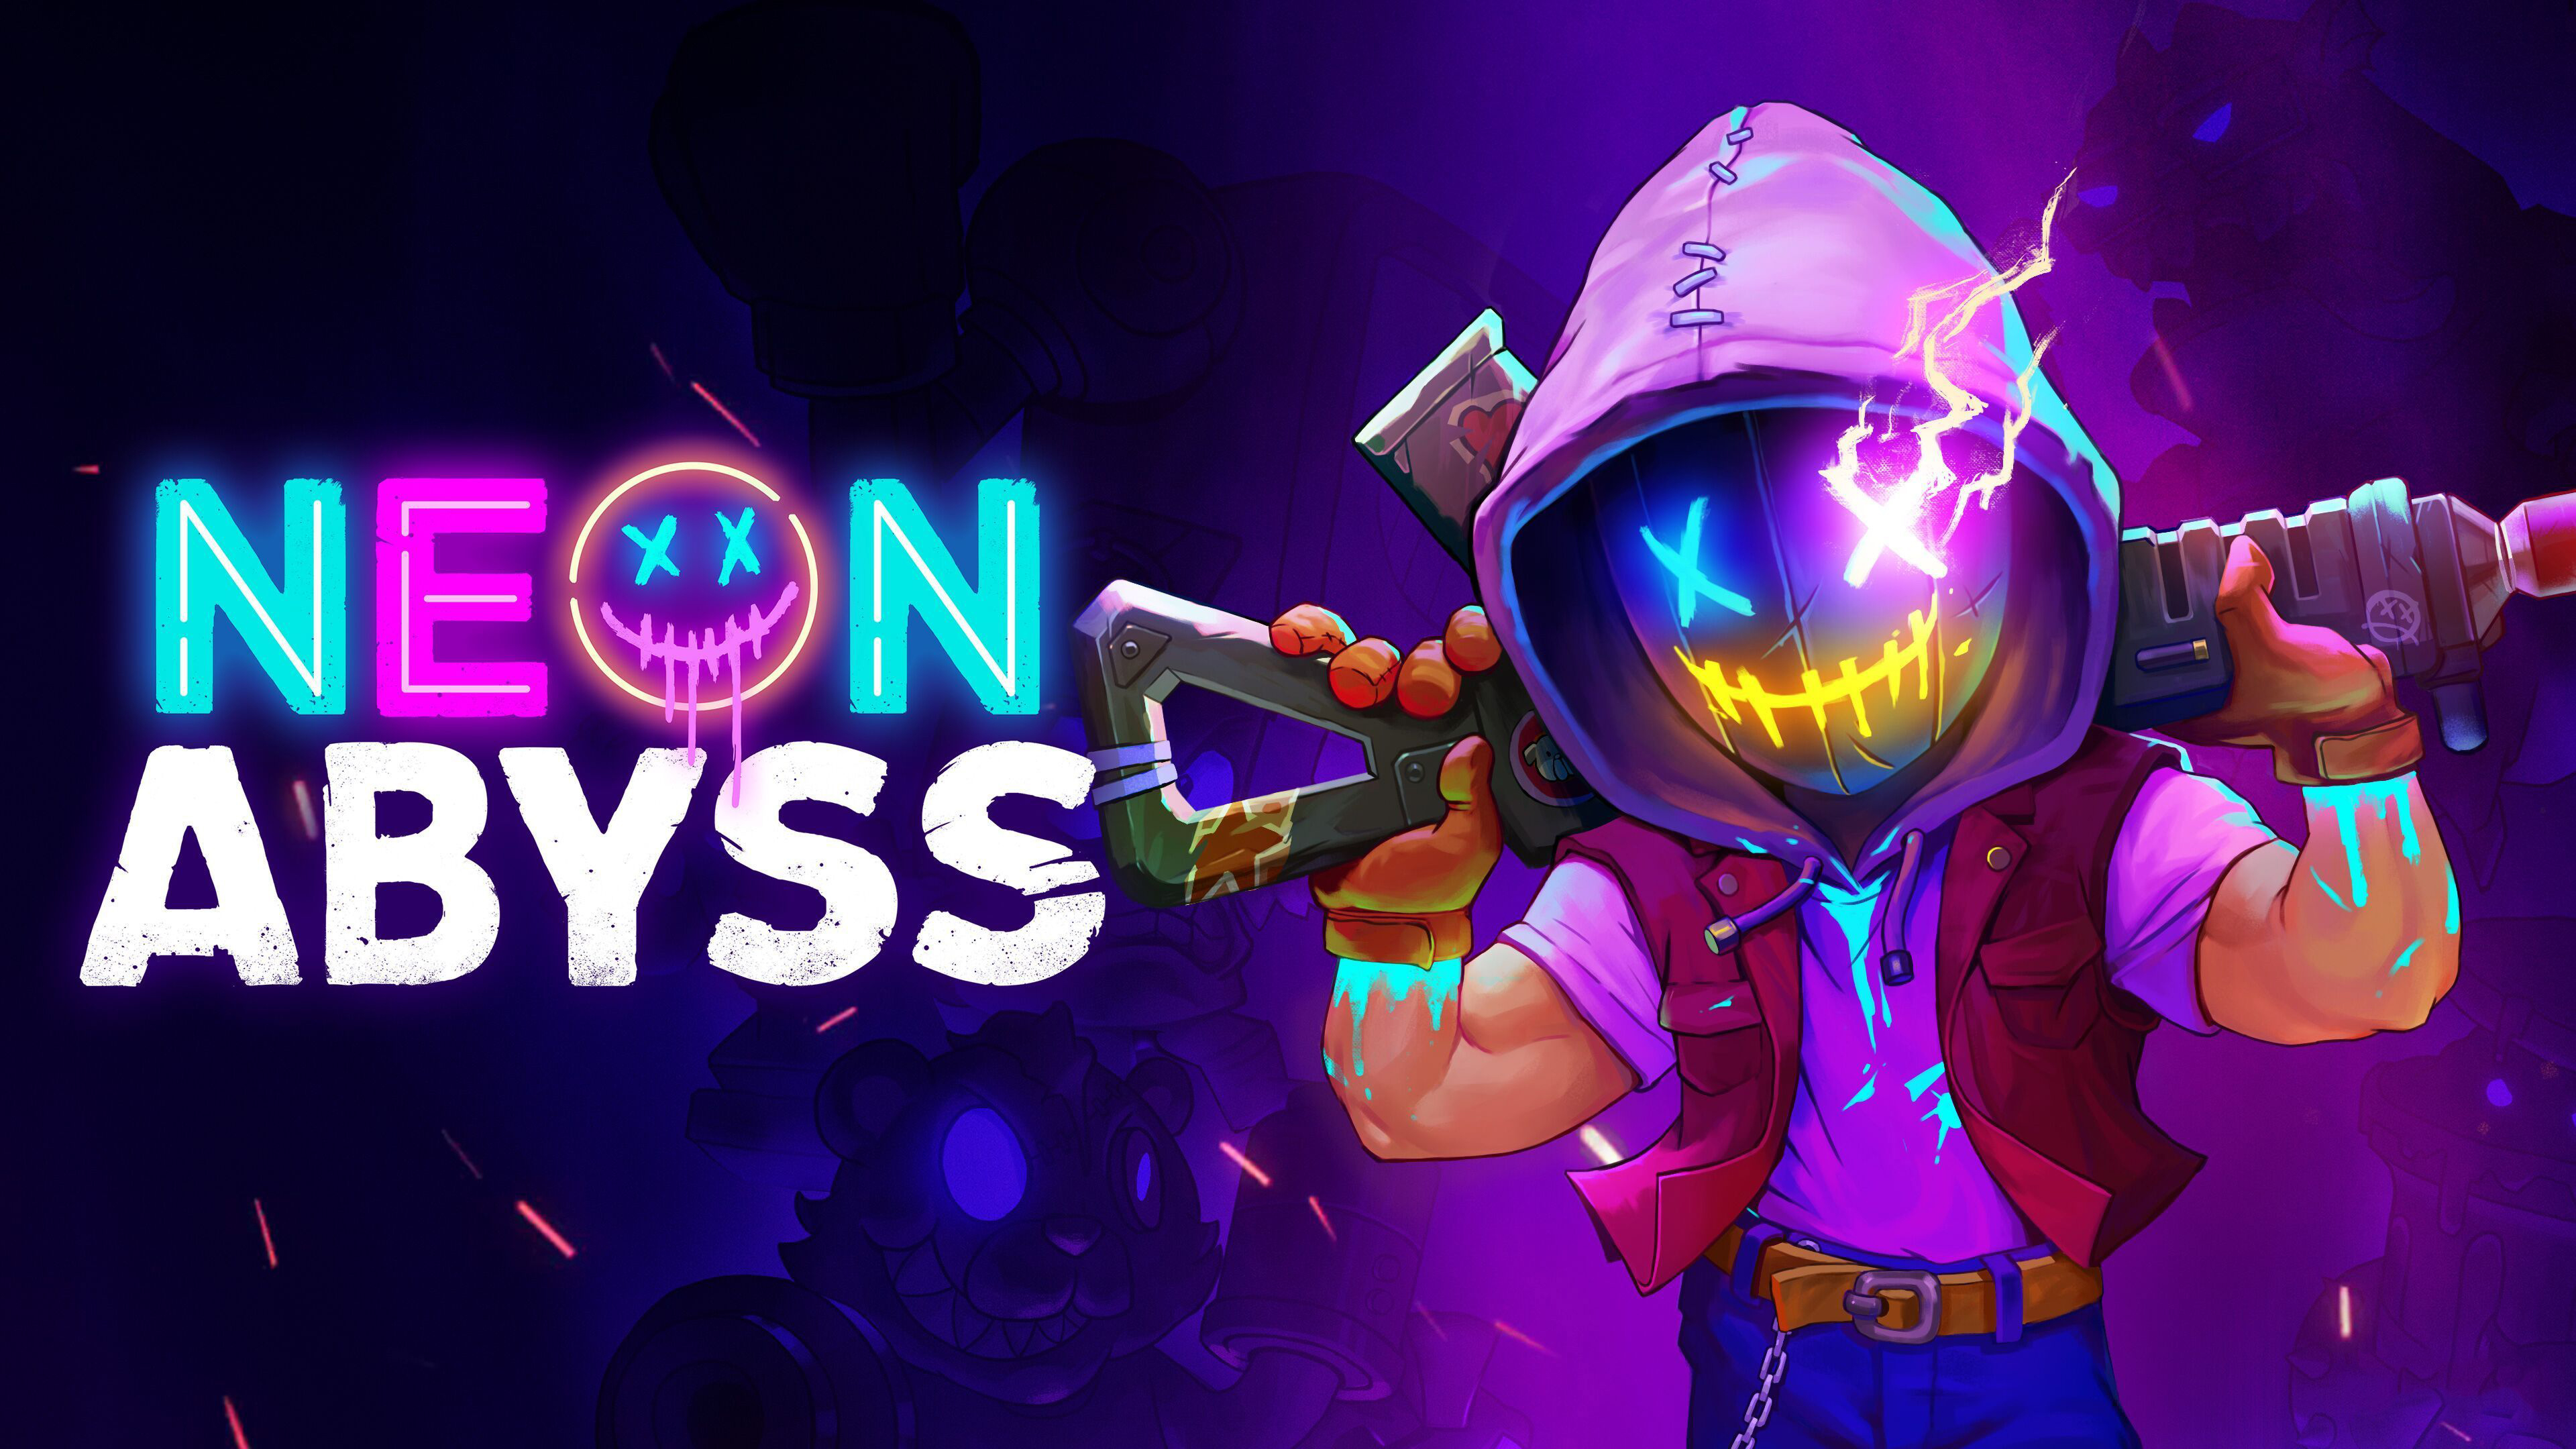 Neon Abyss 4k Wallpaper Playstation 4 Xbox One Nintendo Switch Pc Games 2020 Games Games 1487